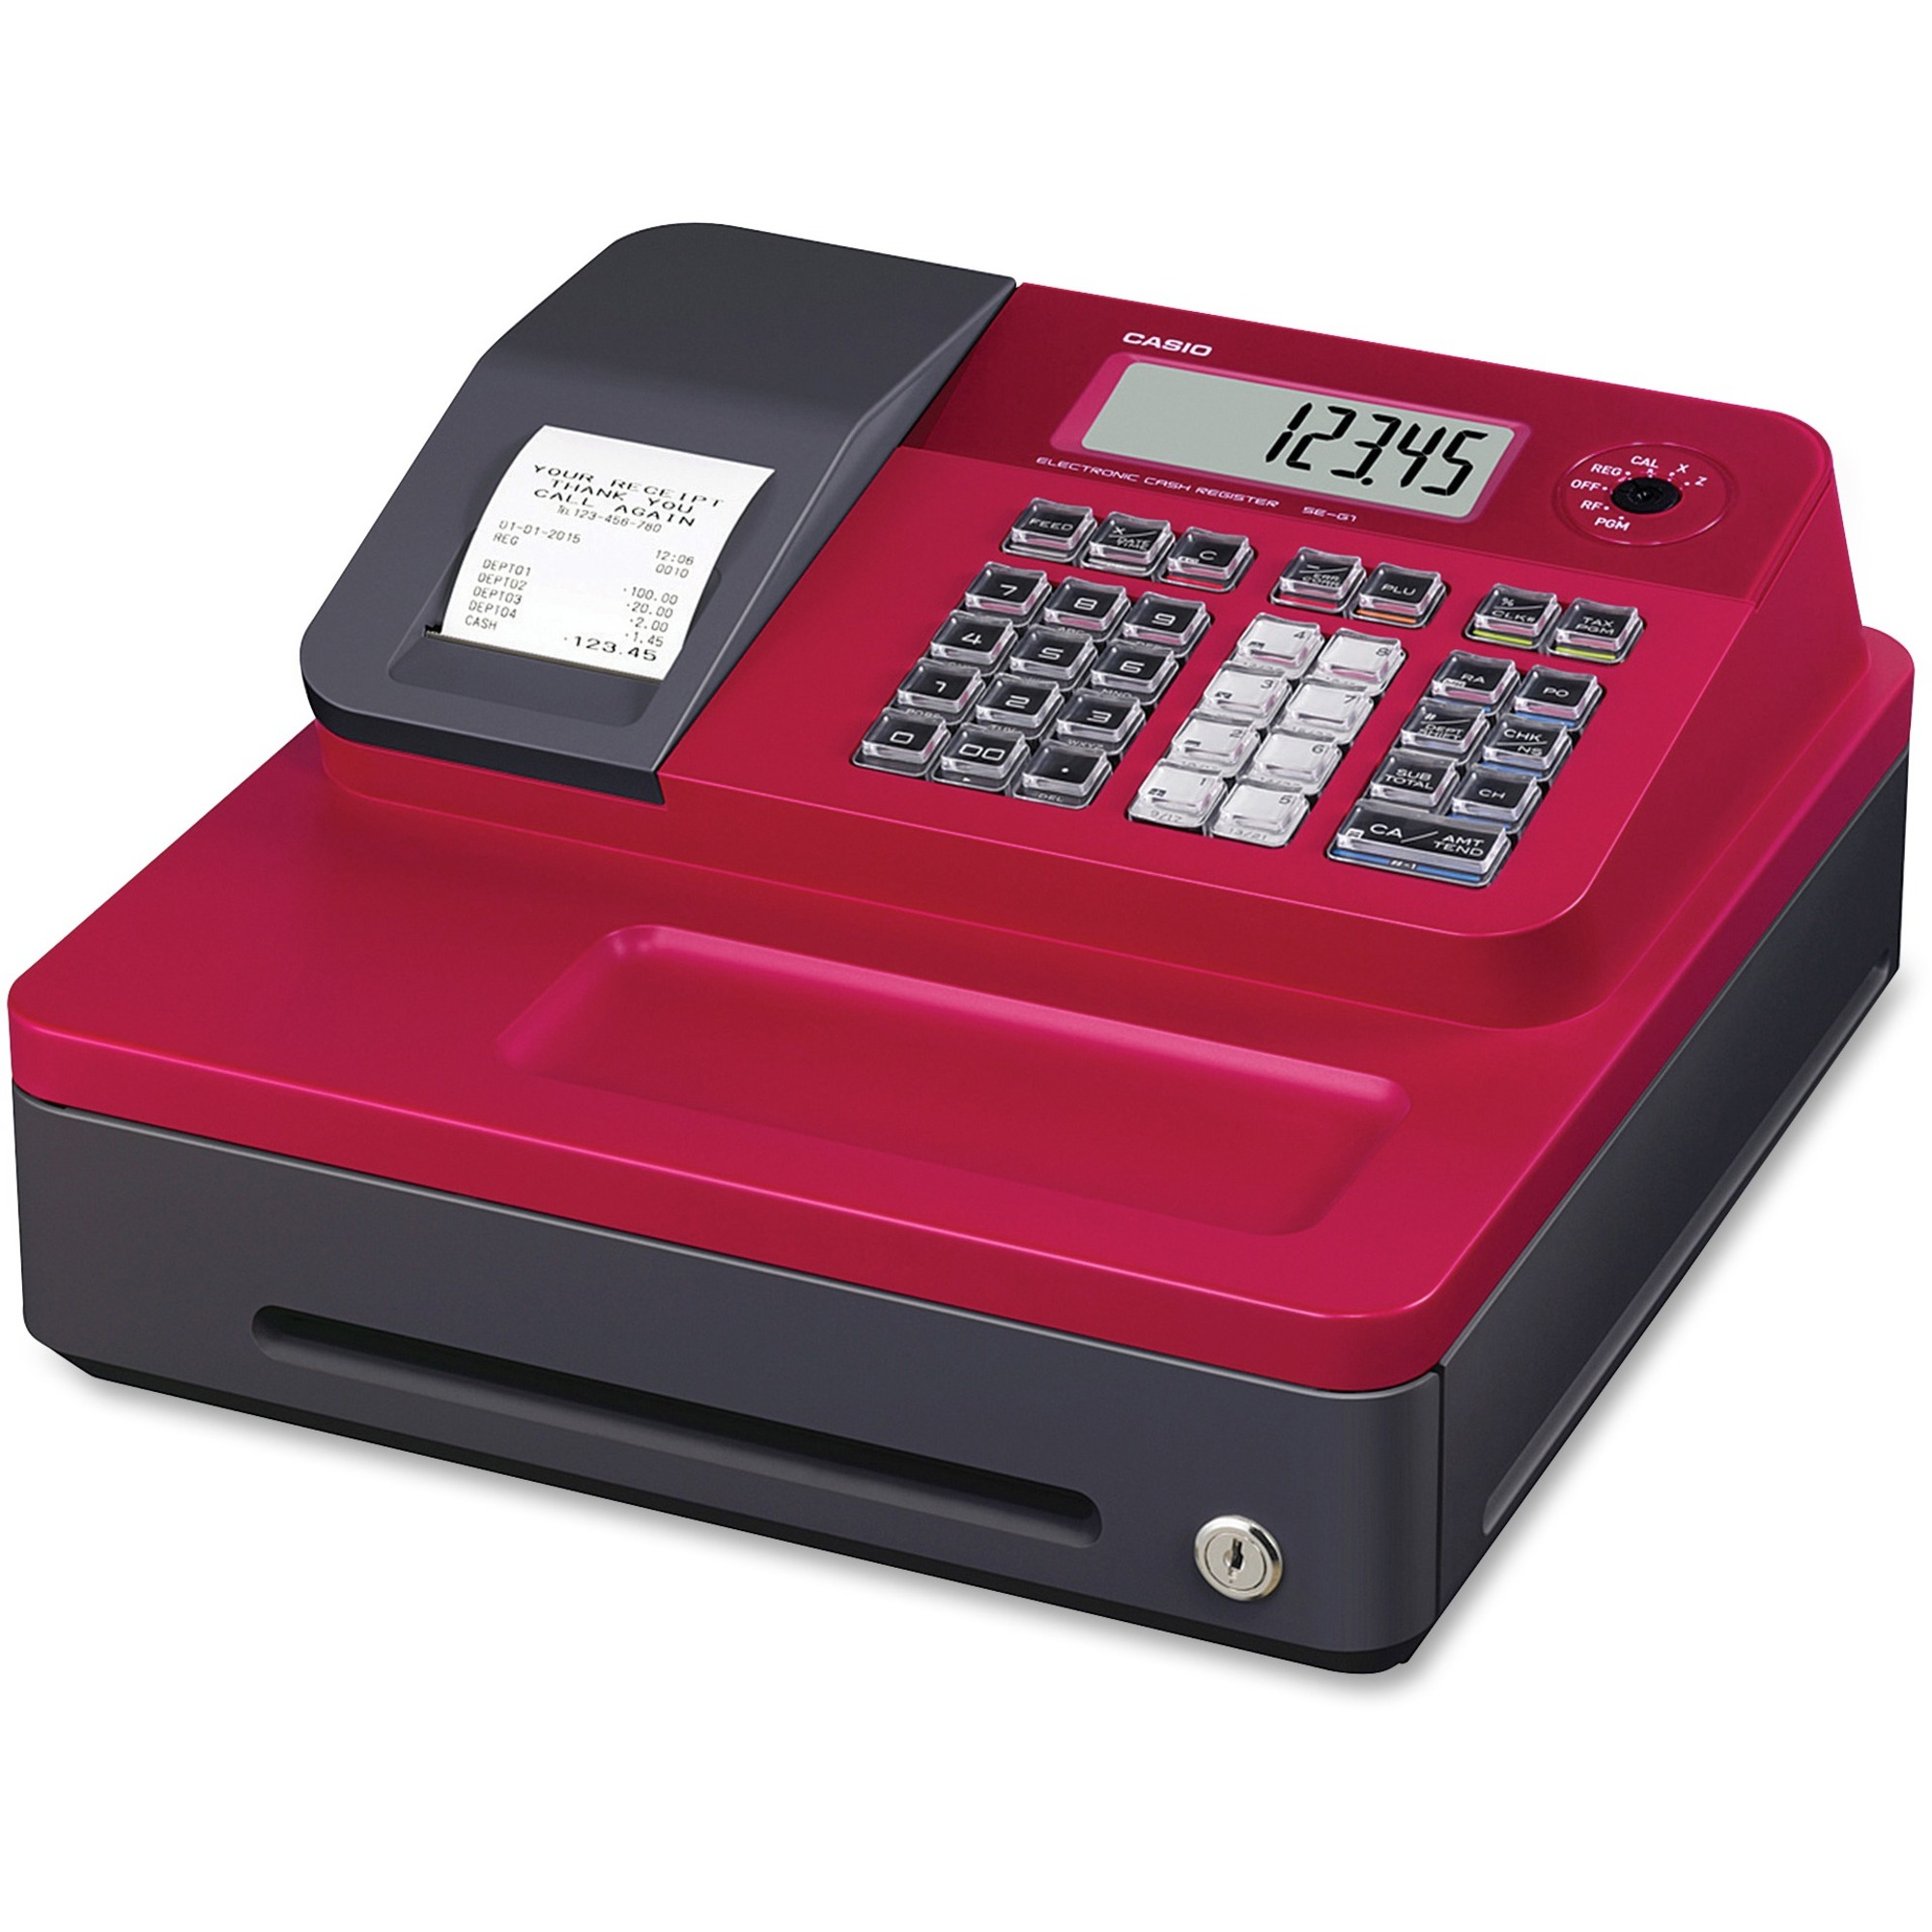 Image for Casio Computer Co., Ltd Casio SEG1 Single-tape Thermal Cash Register - 999 Plus - 8 Clerks - 24 Departments - Thermal Printing